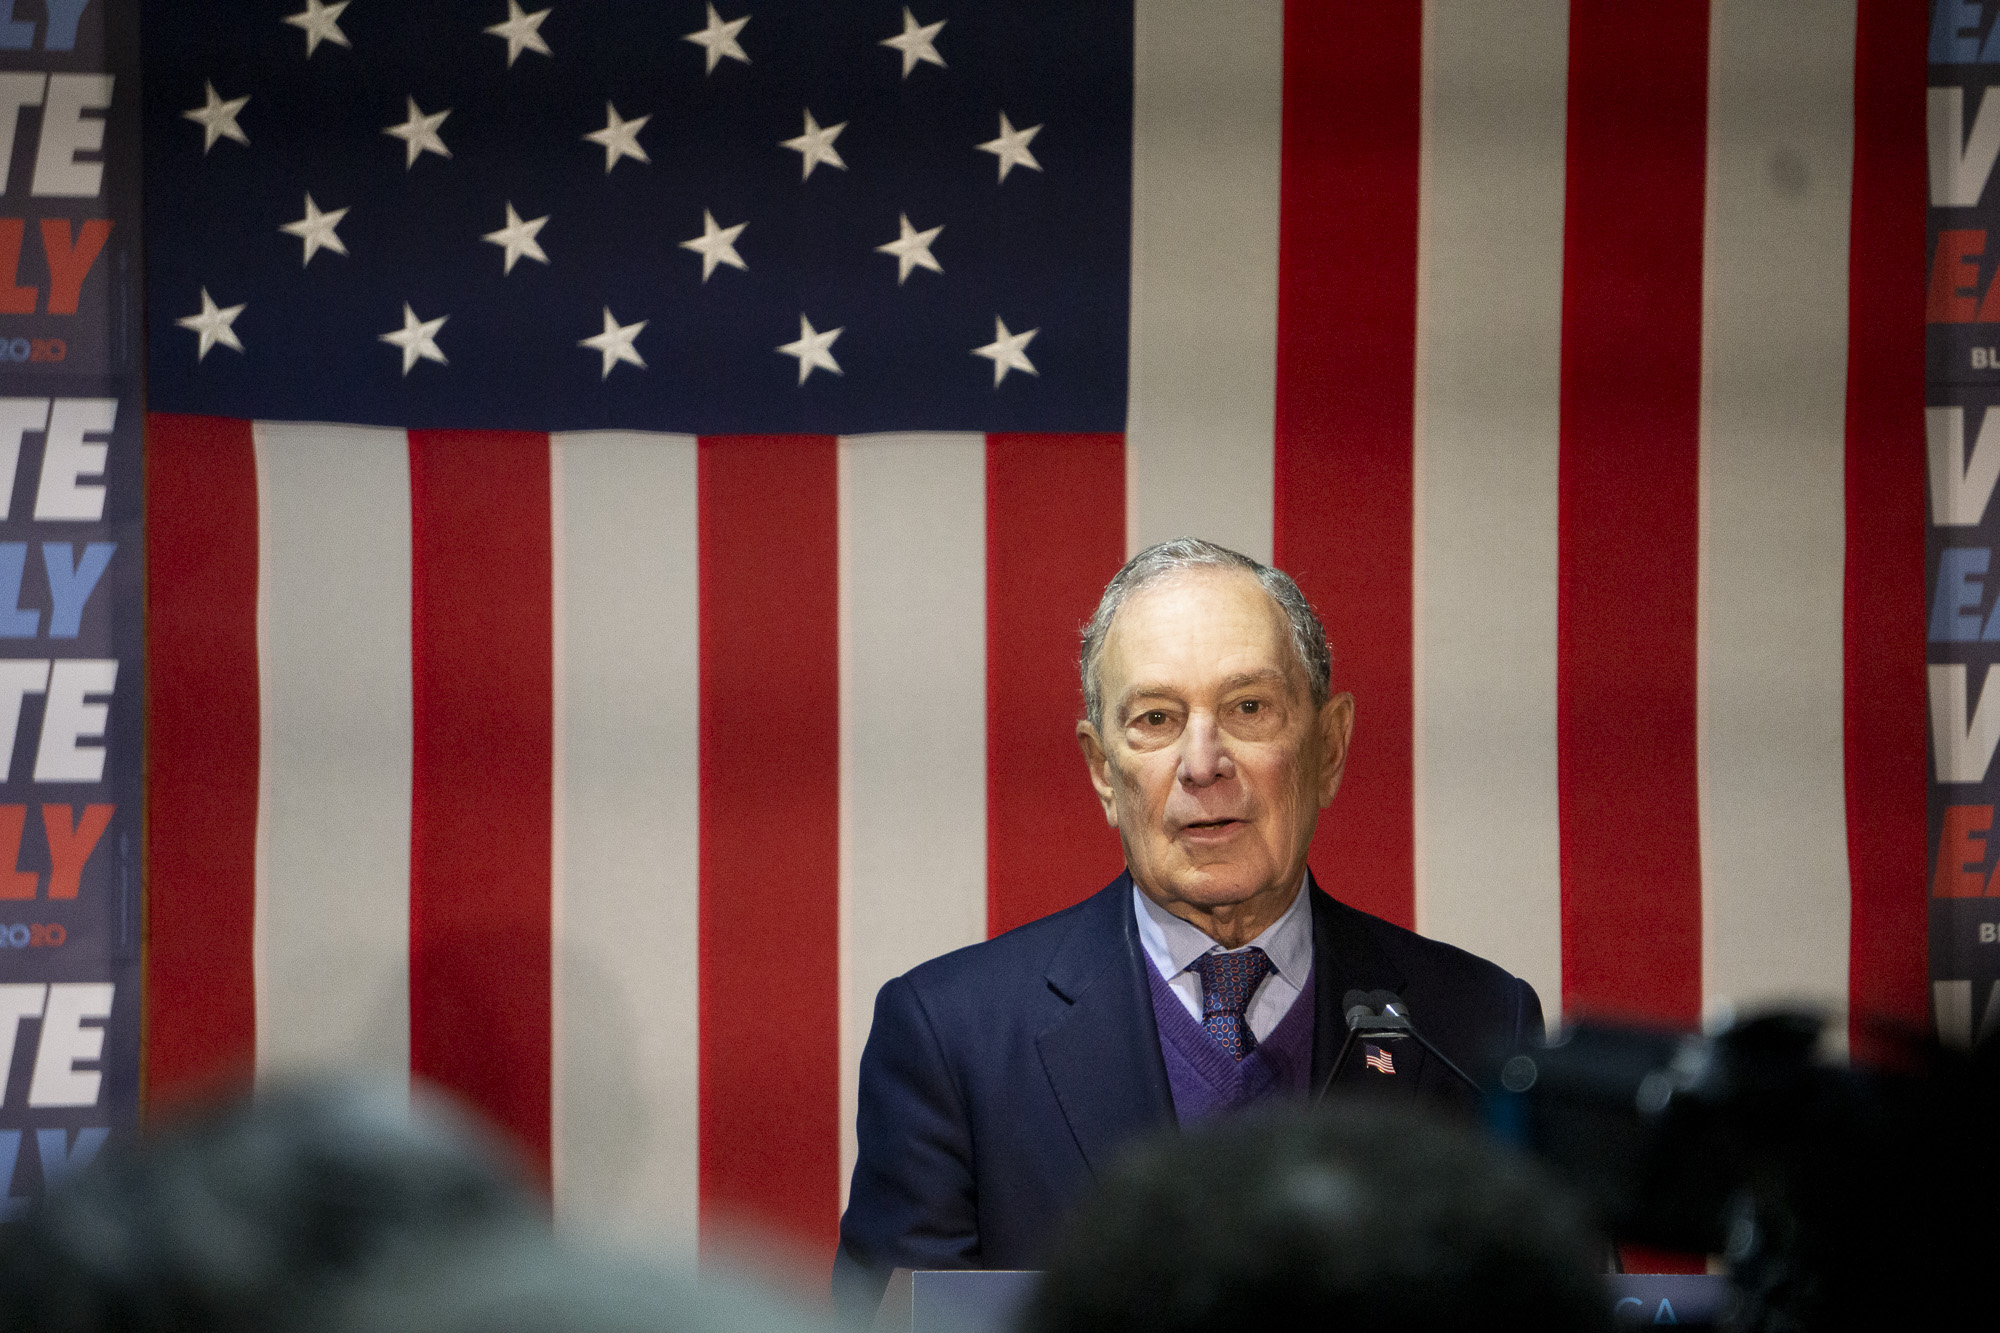 Michael Bloomberg, touting the endorsement of state Treasurer Fiona Ma, at Old Soul Co. coffee shop in Sacramento